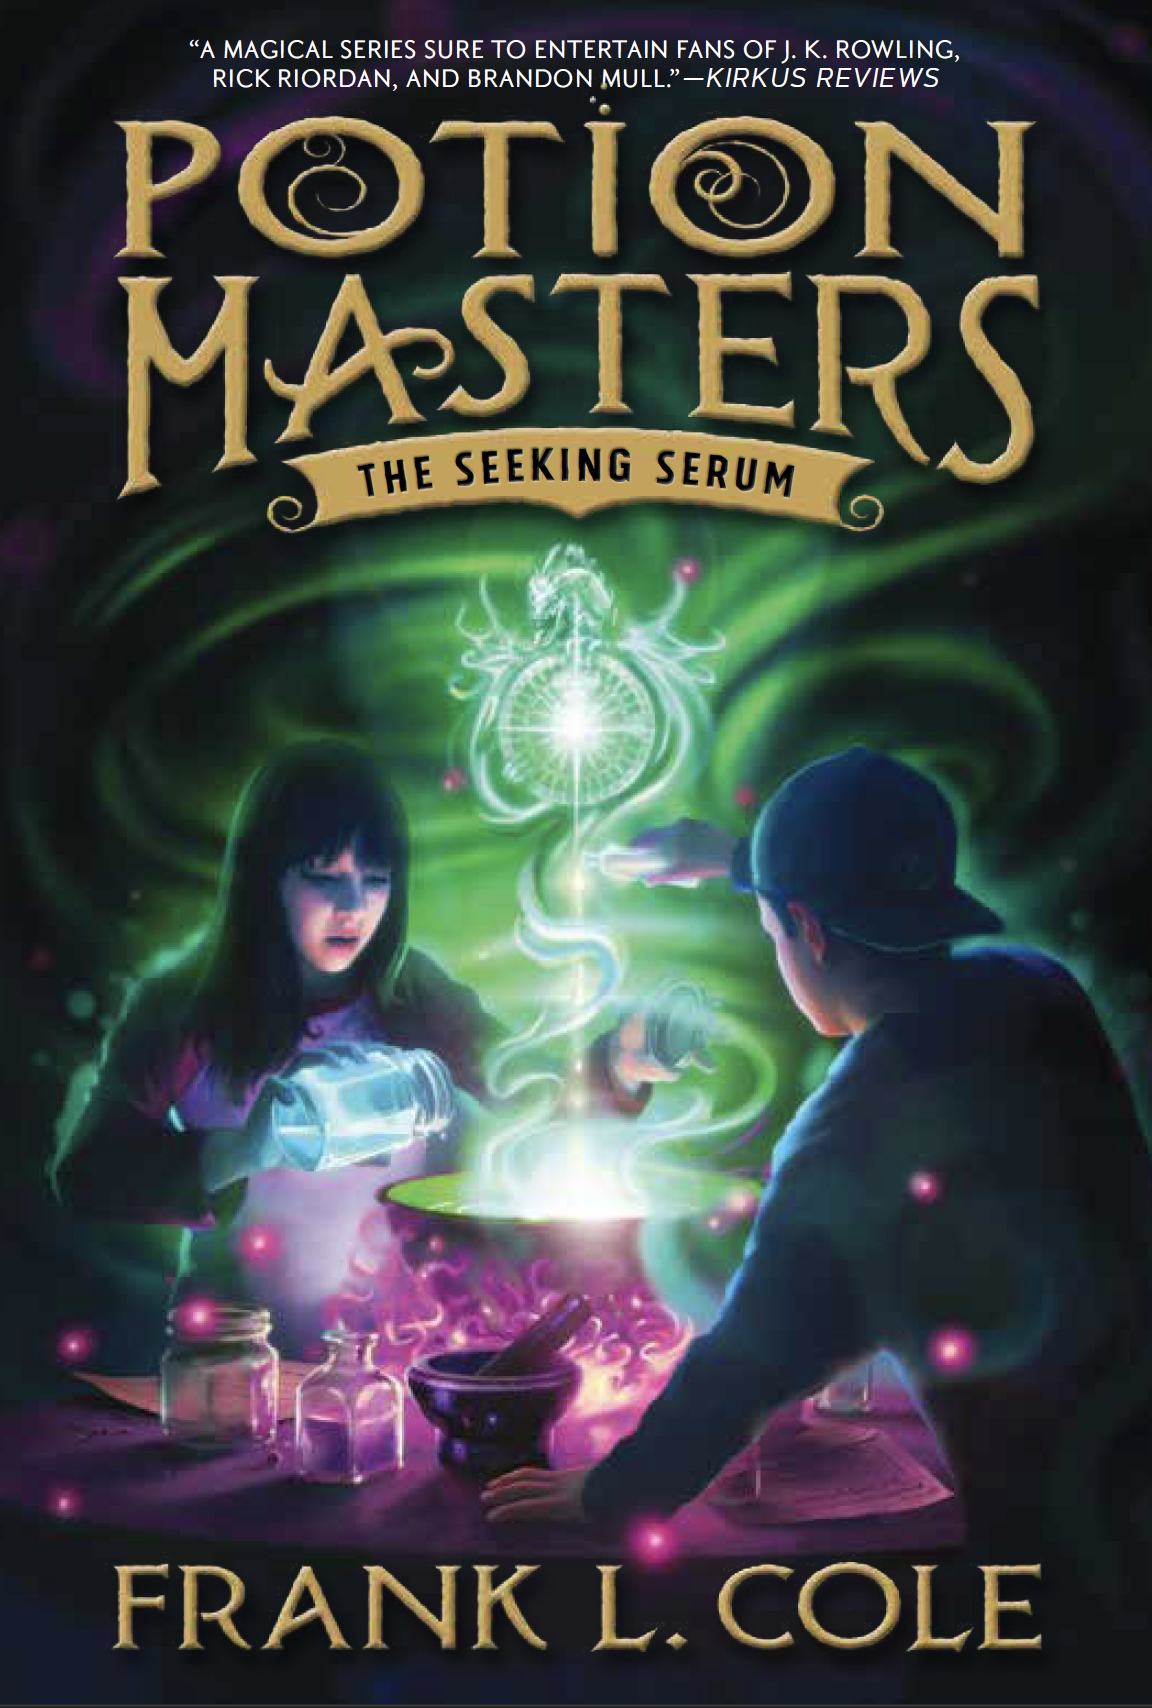 Potion Masters: The Seeking Serum (Book #3) by Frank L. Cole